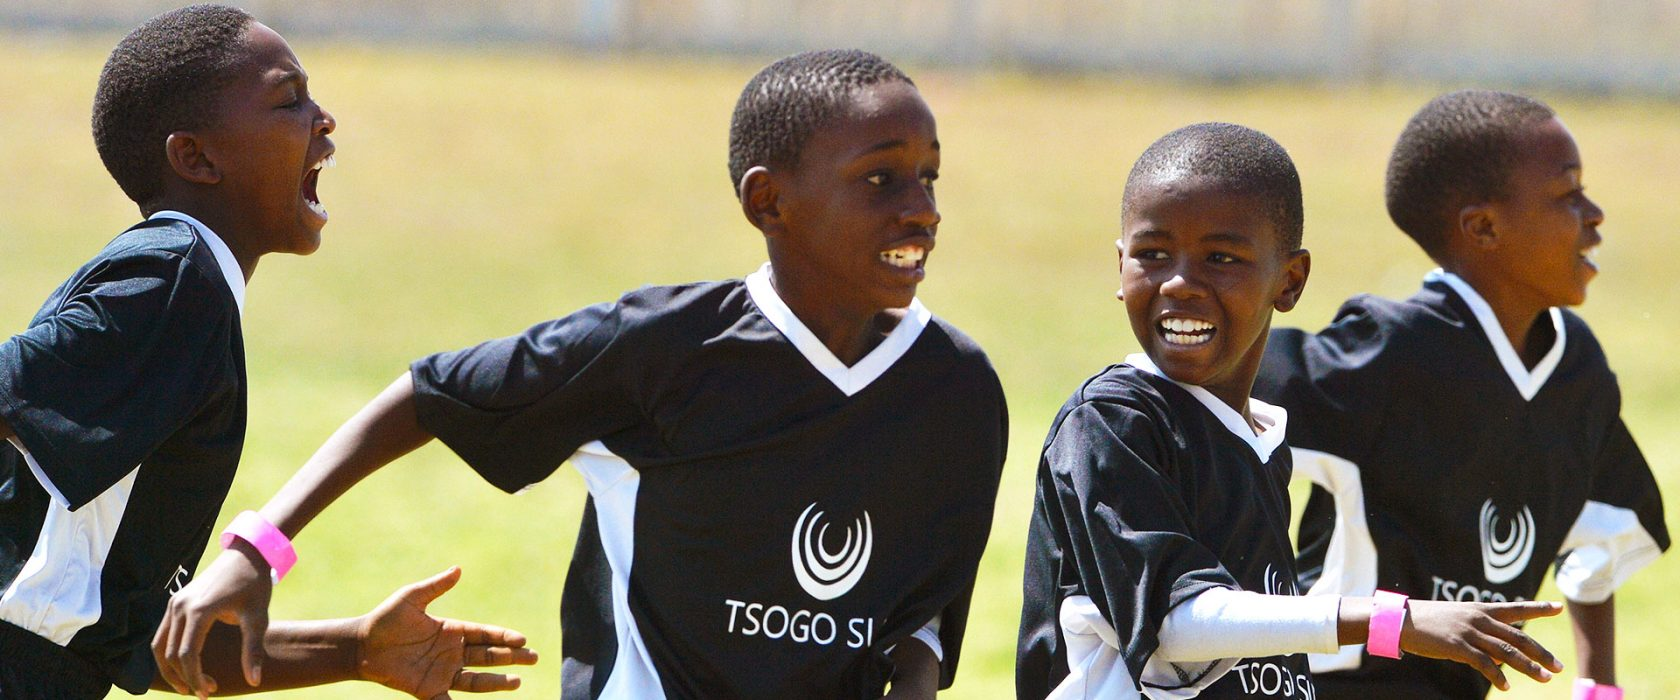 Kids Playing Soccer at Tsogo Sun Sports Academy